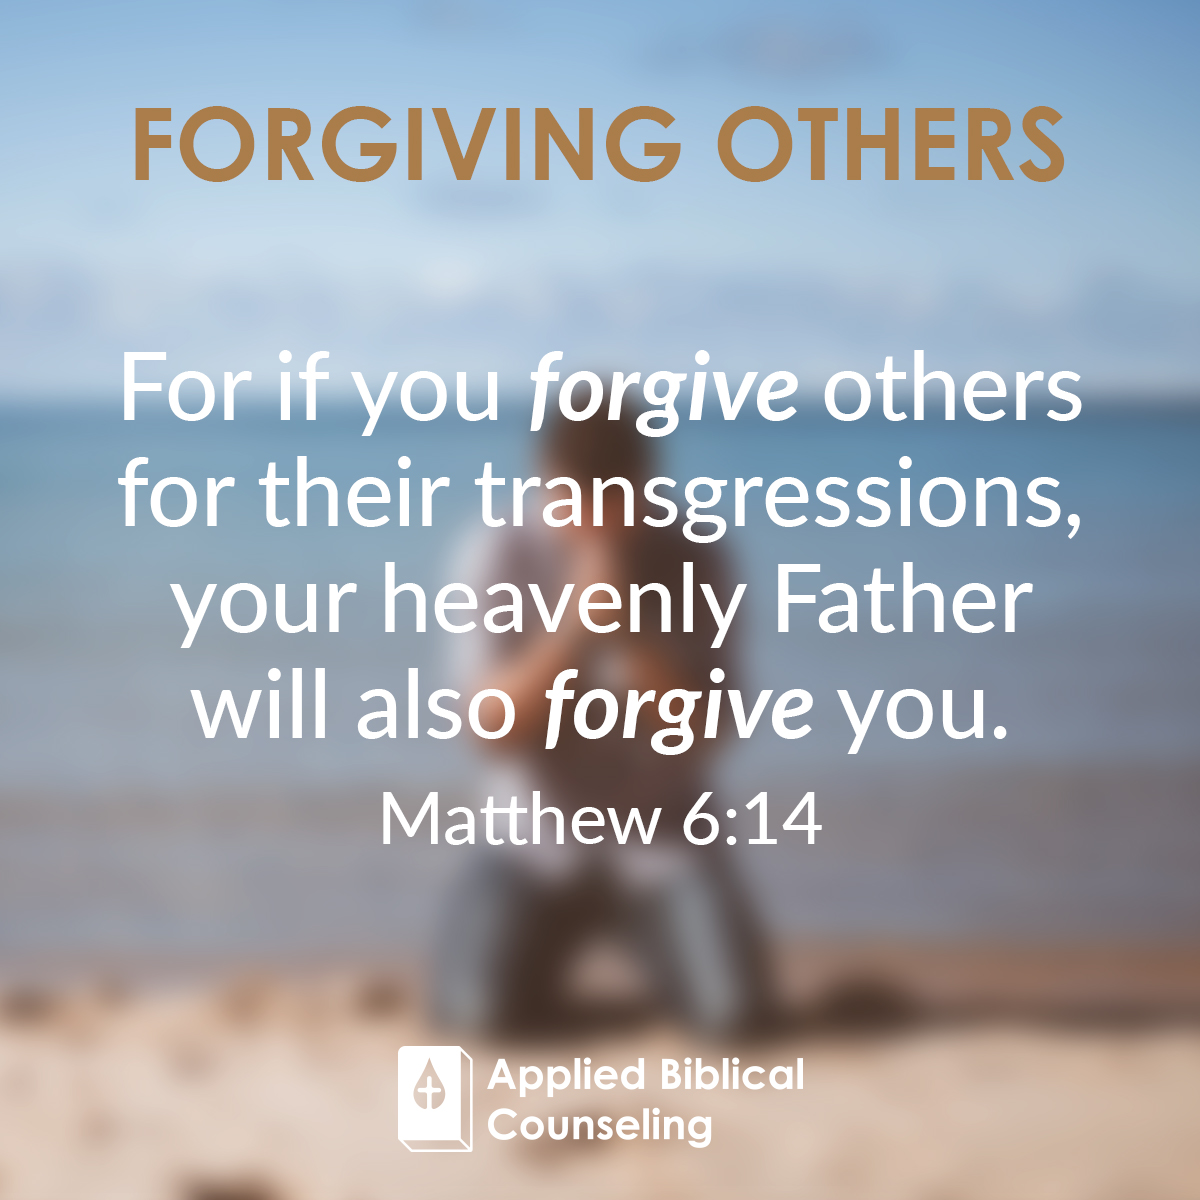 Forgiving Others Applied Biblical Counseling 1